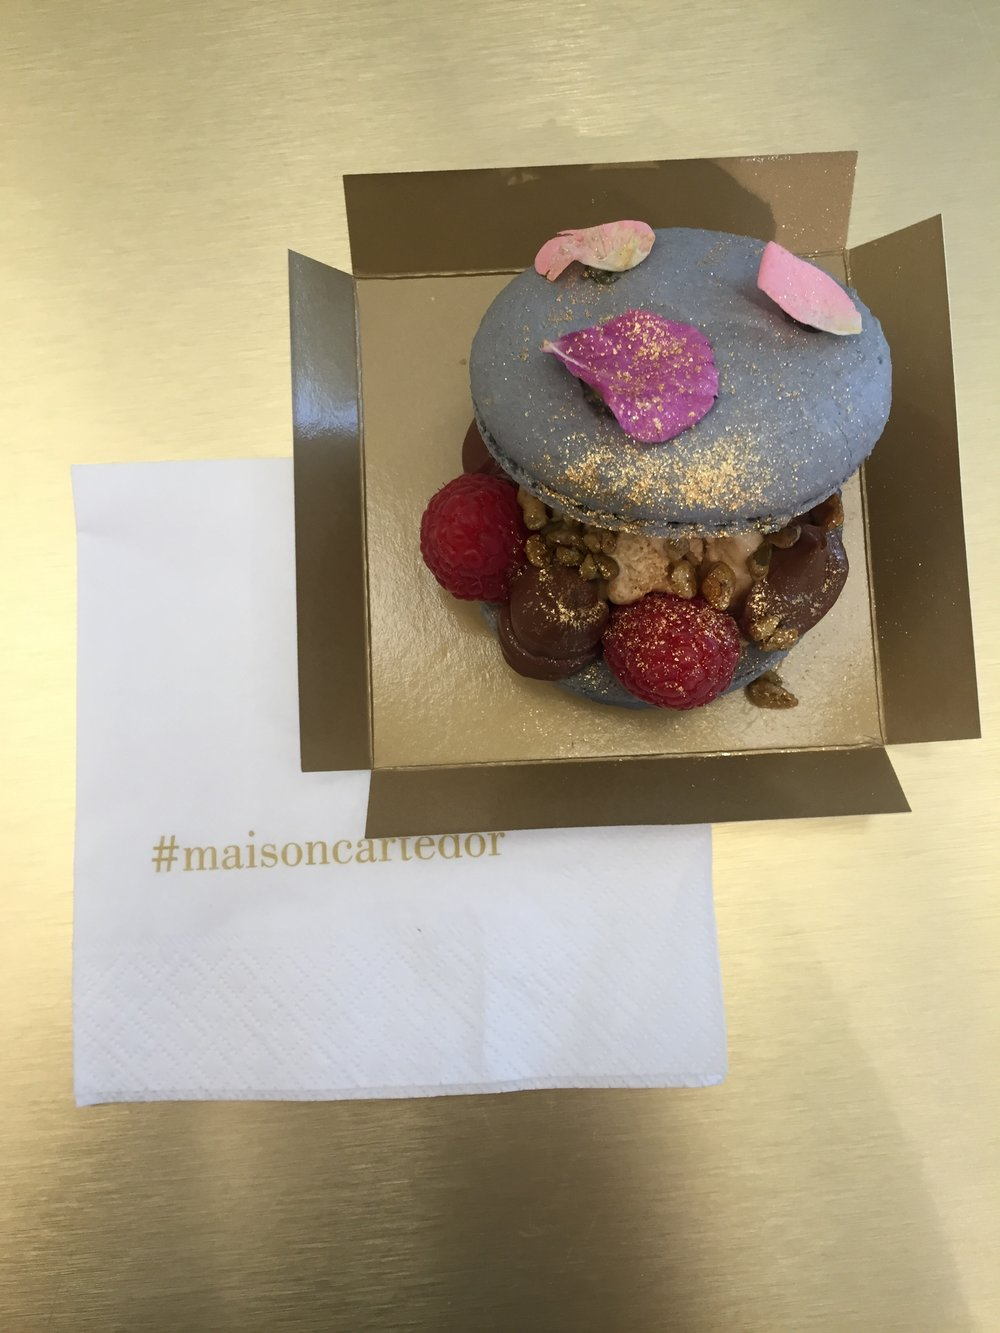 1st place:  Maison Carte D'Or macaron with salted caramel ice cream, chocolate creme, raspberries, caramelized pistachios, and some gold sugar.